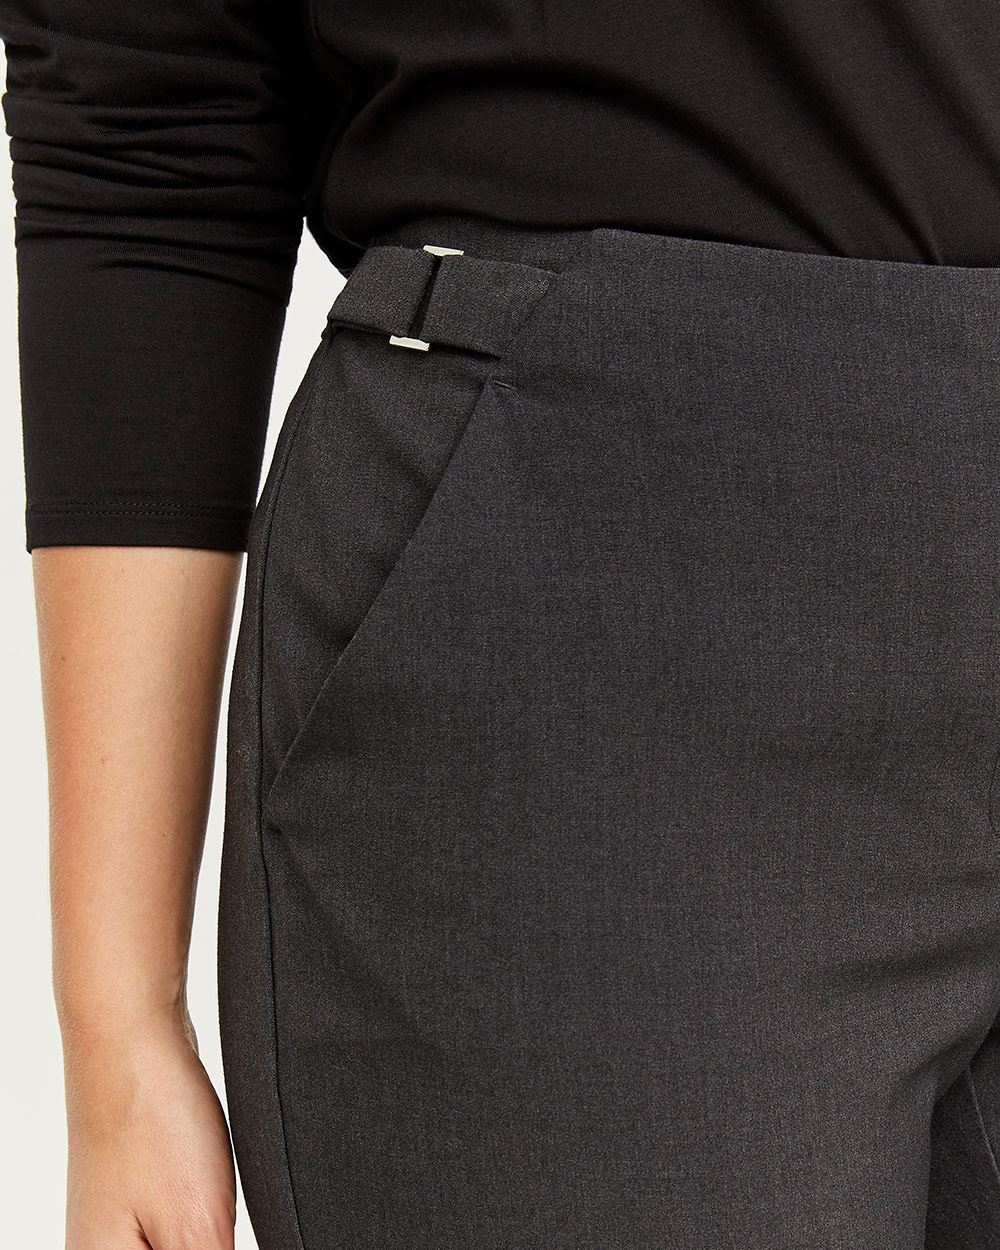 The New Classic Straight Pants with Side Metal Buckles